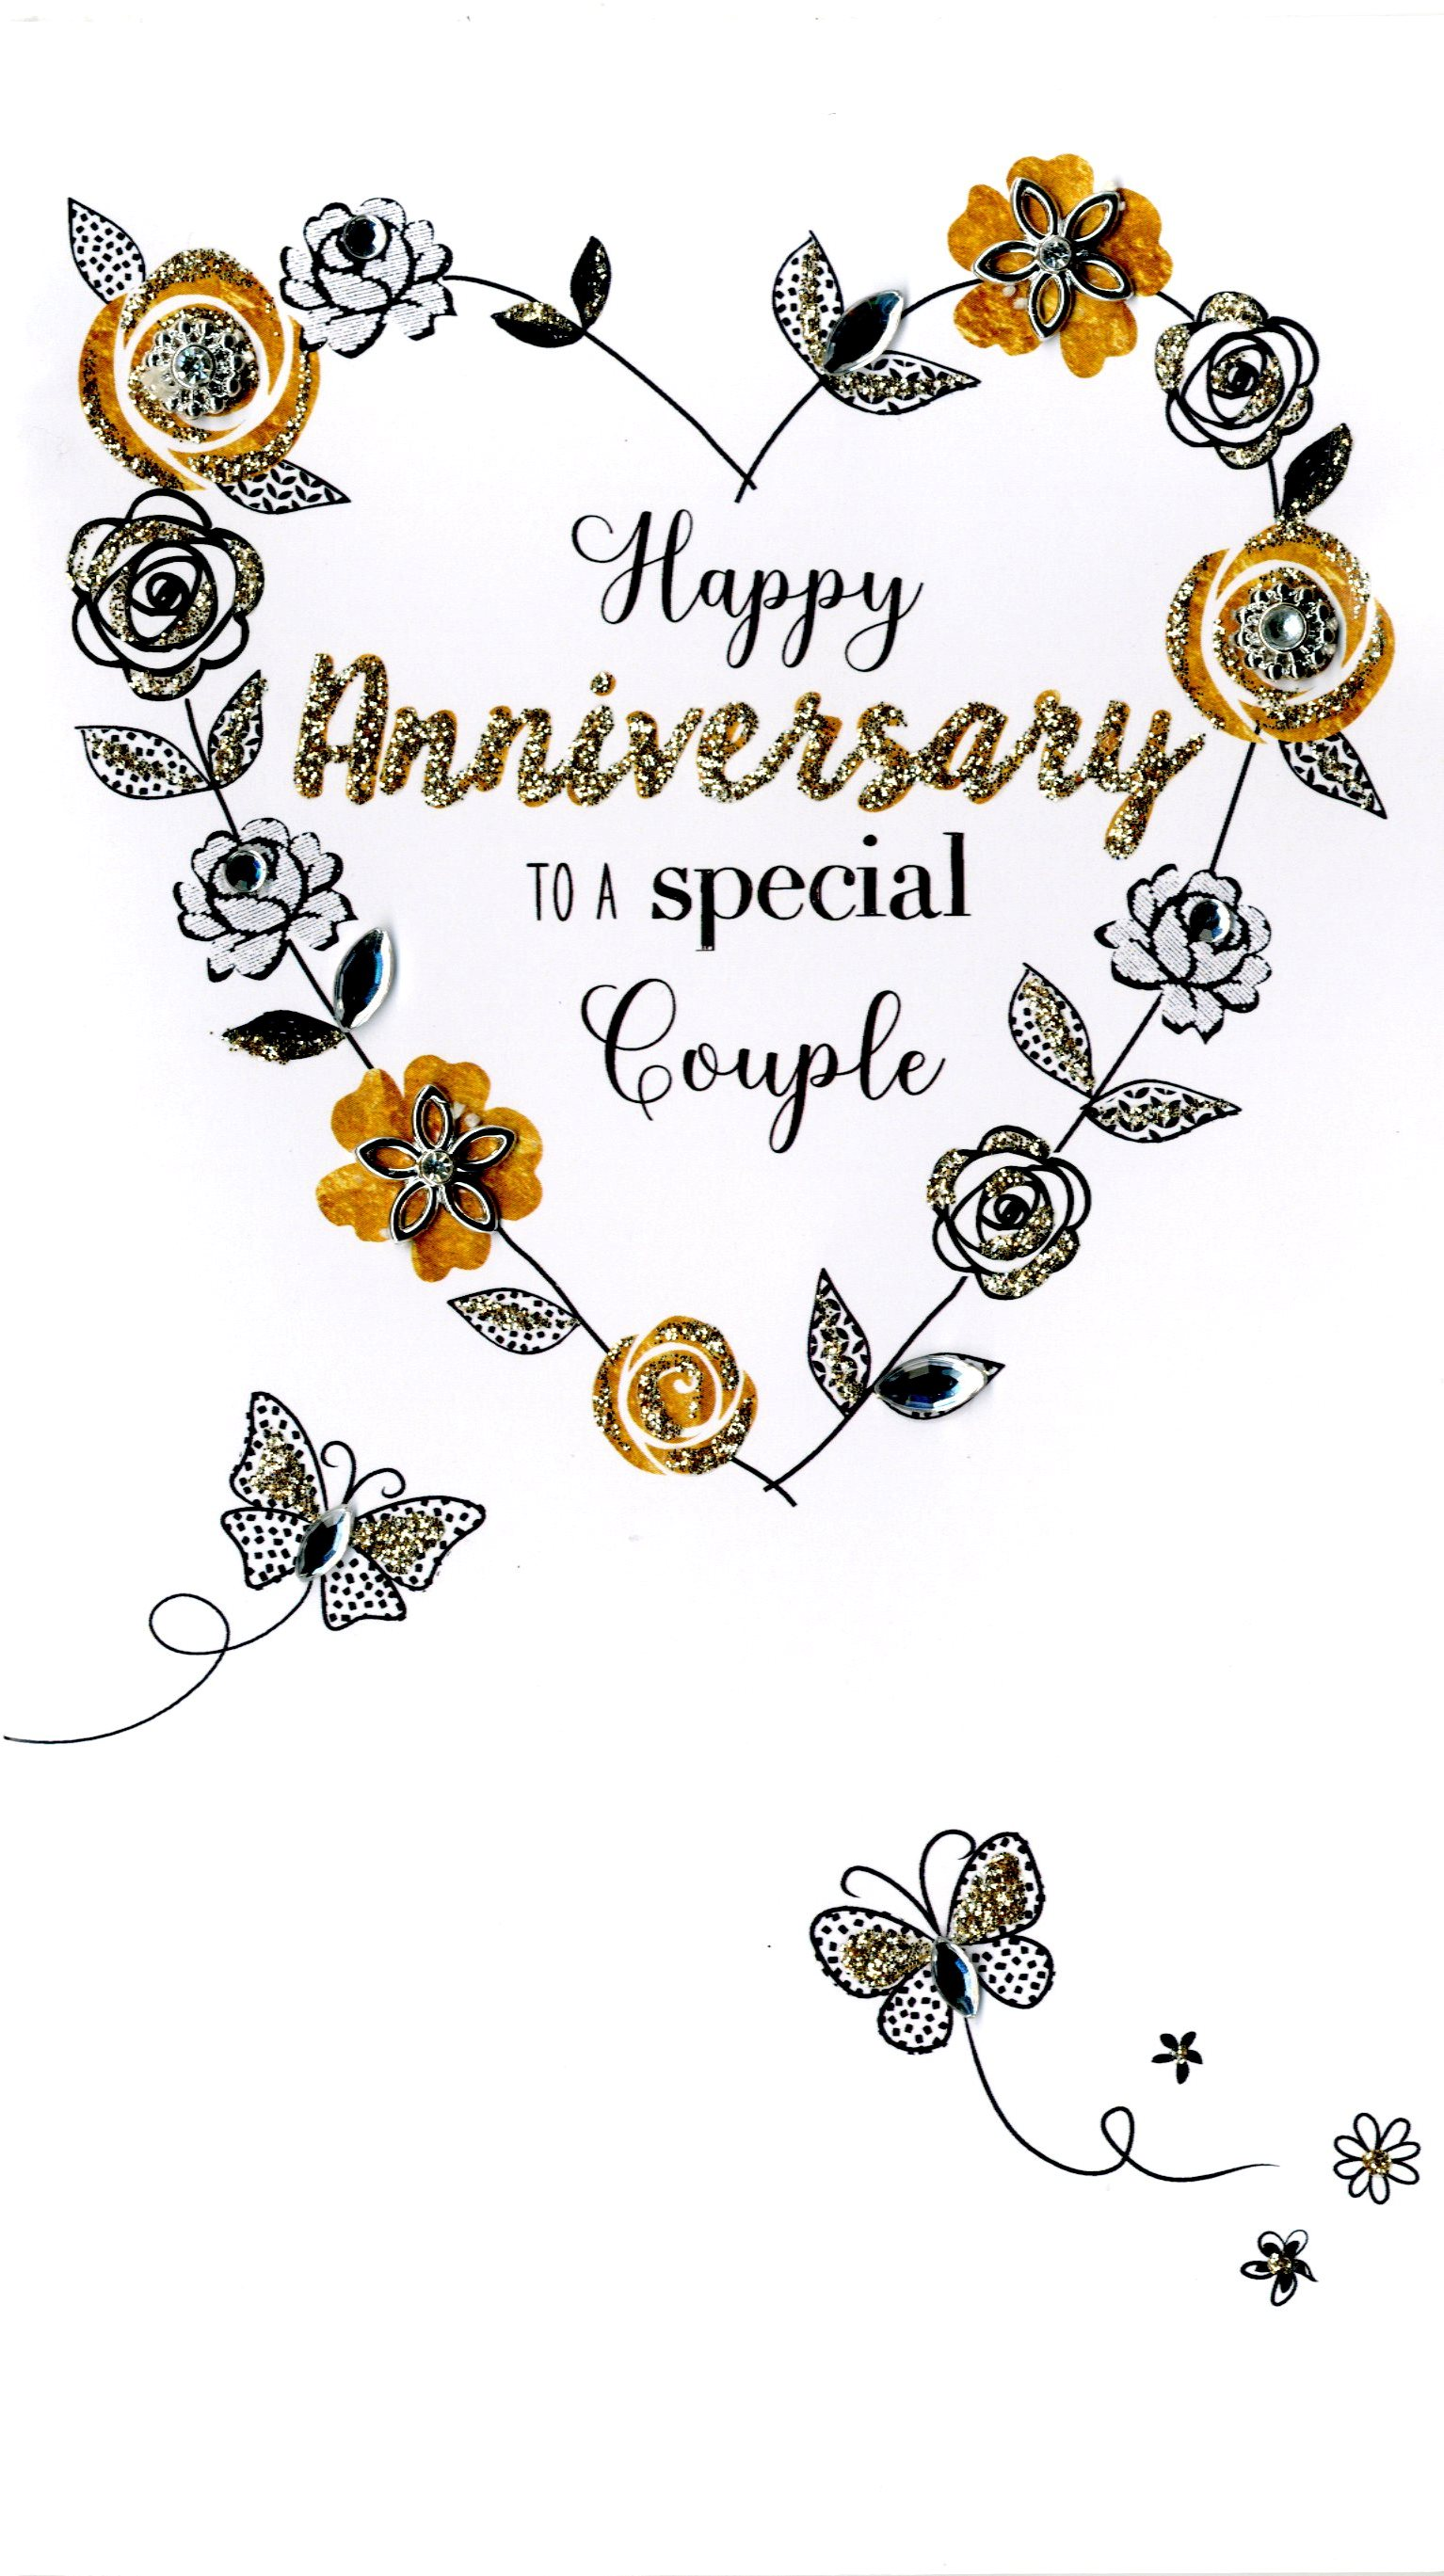 Special couple anniversary greeting card cards love kates special couple anniversary greeting card m4hsunfo Choice Image